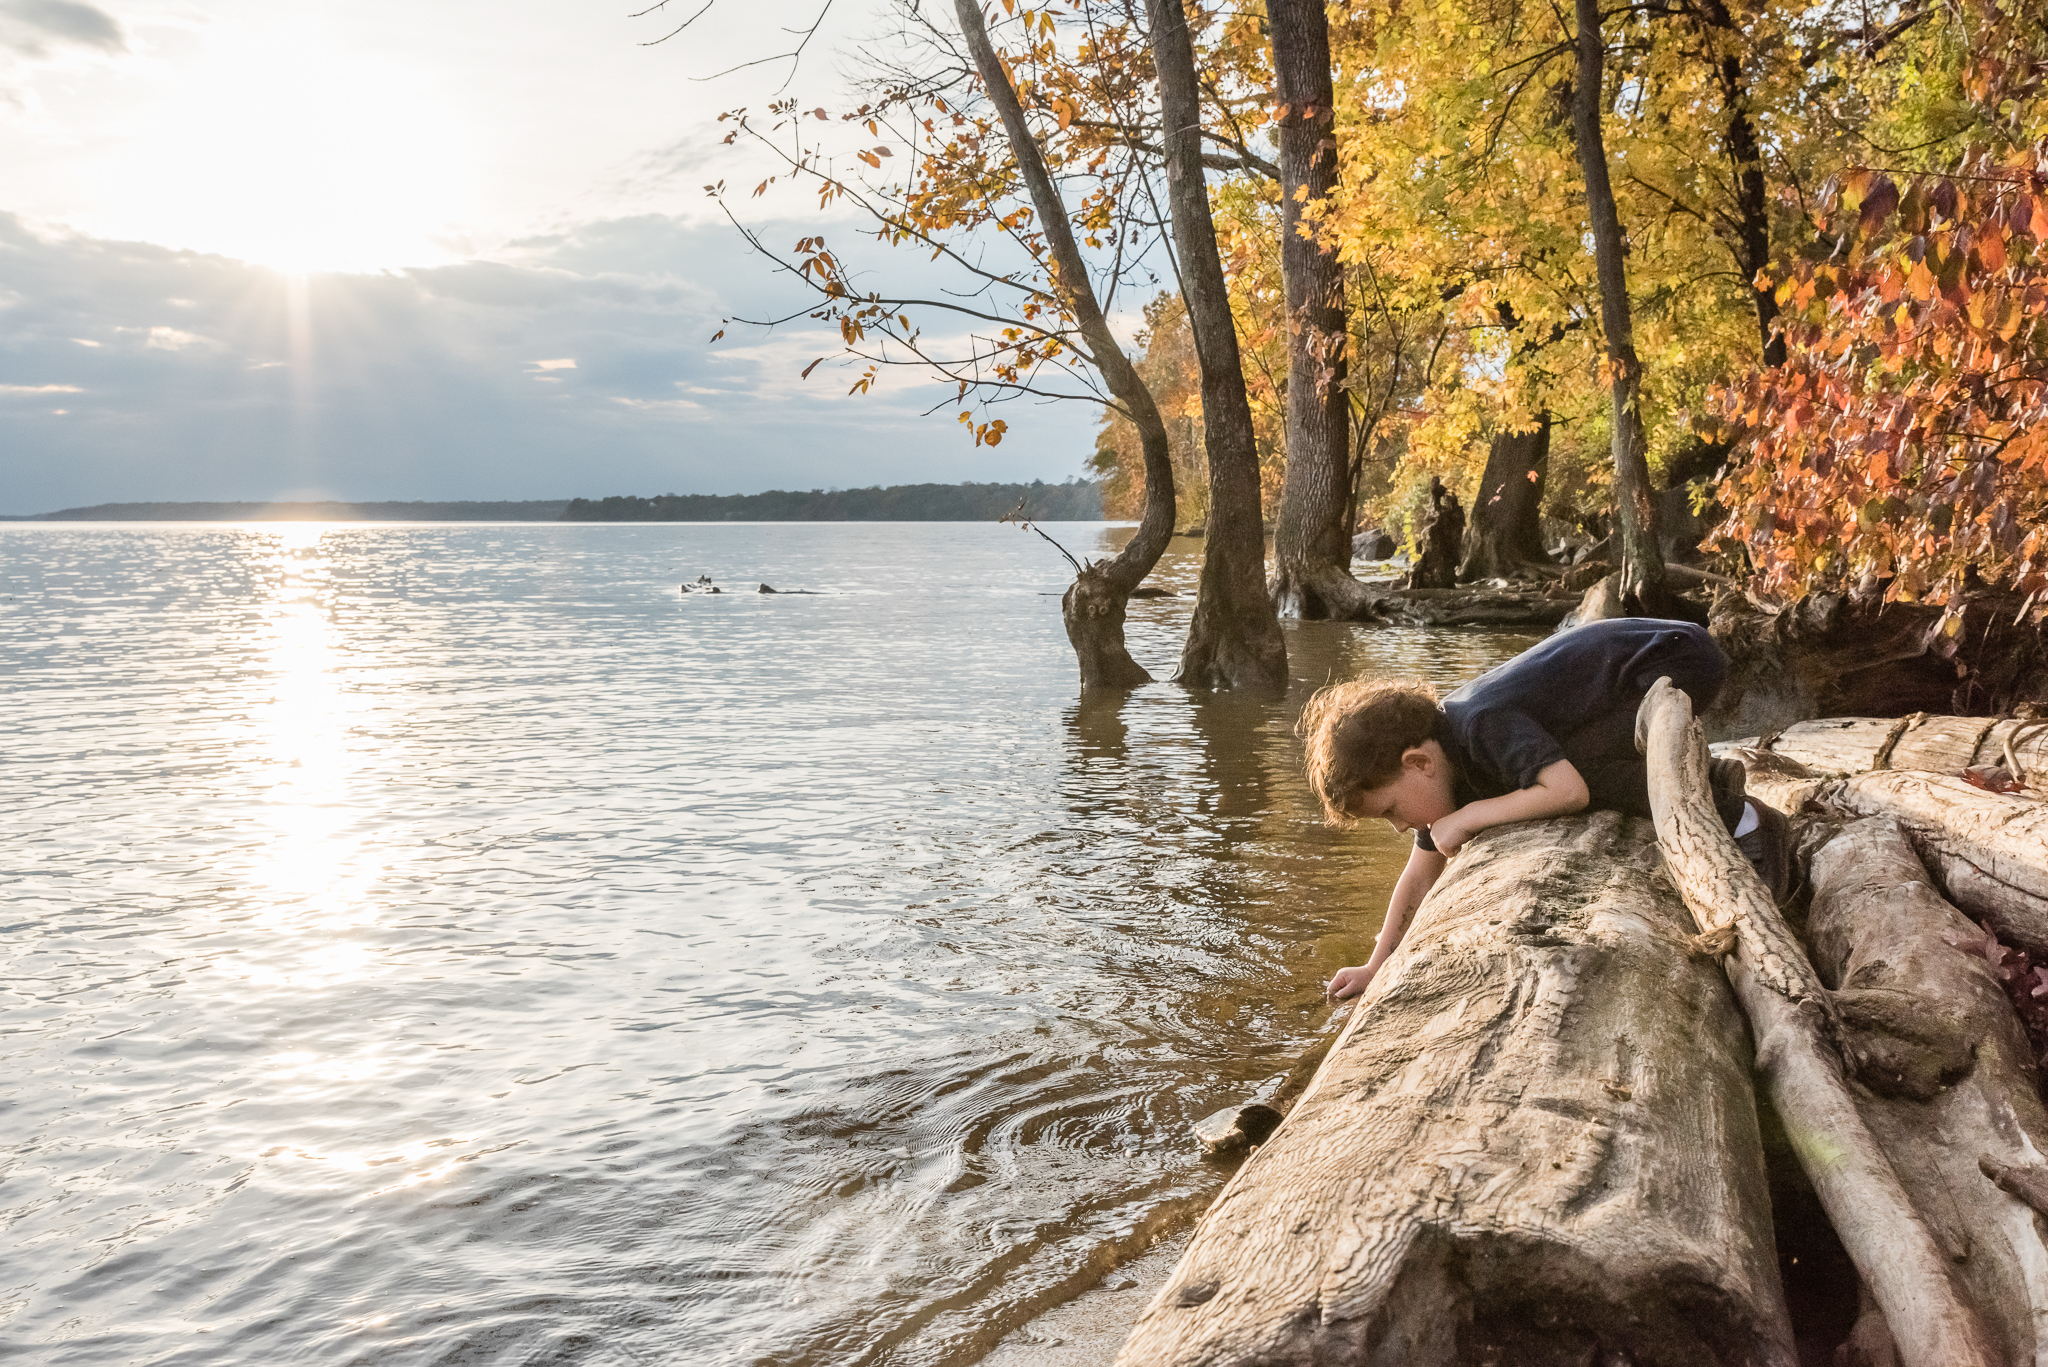 Boy playing in Potomac River by Northern Virginia Family Photographer Nicole Sanchez